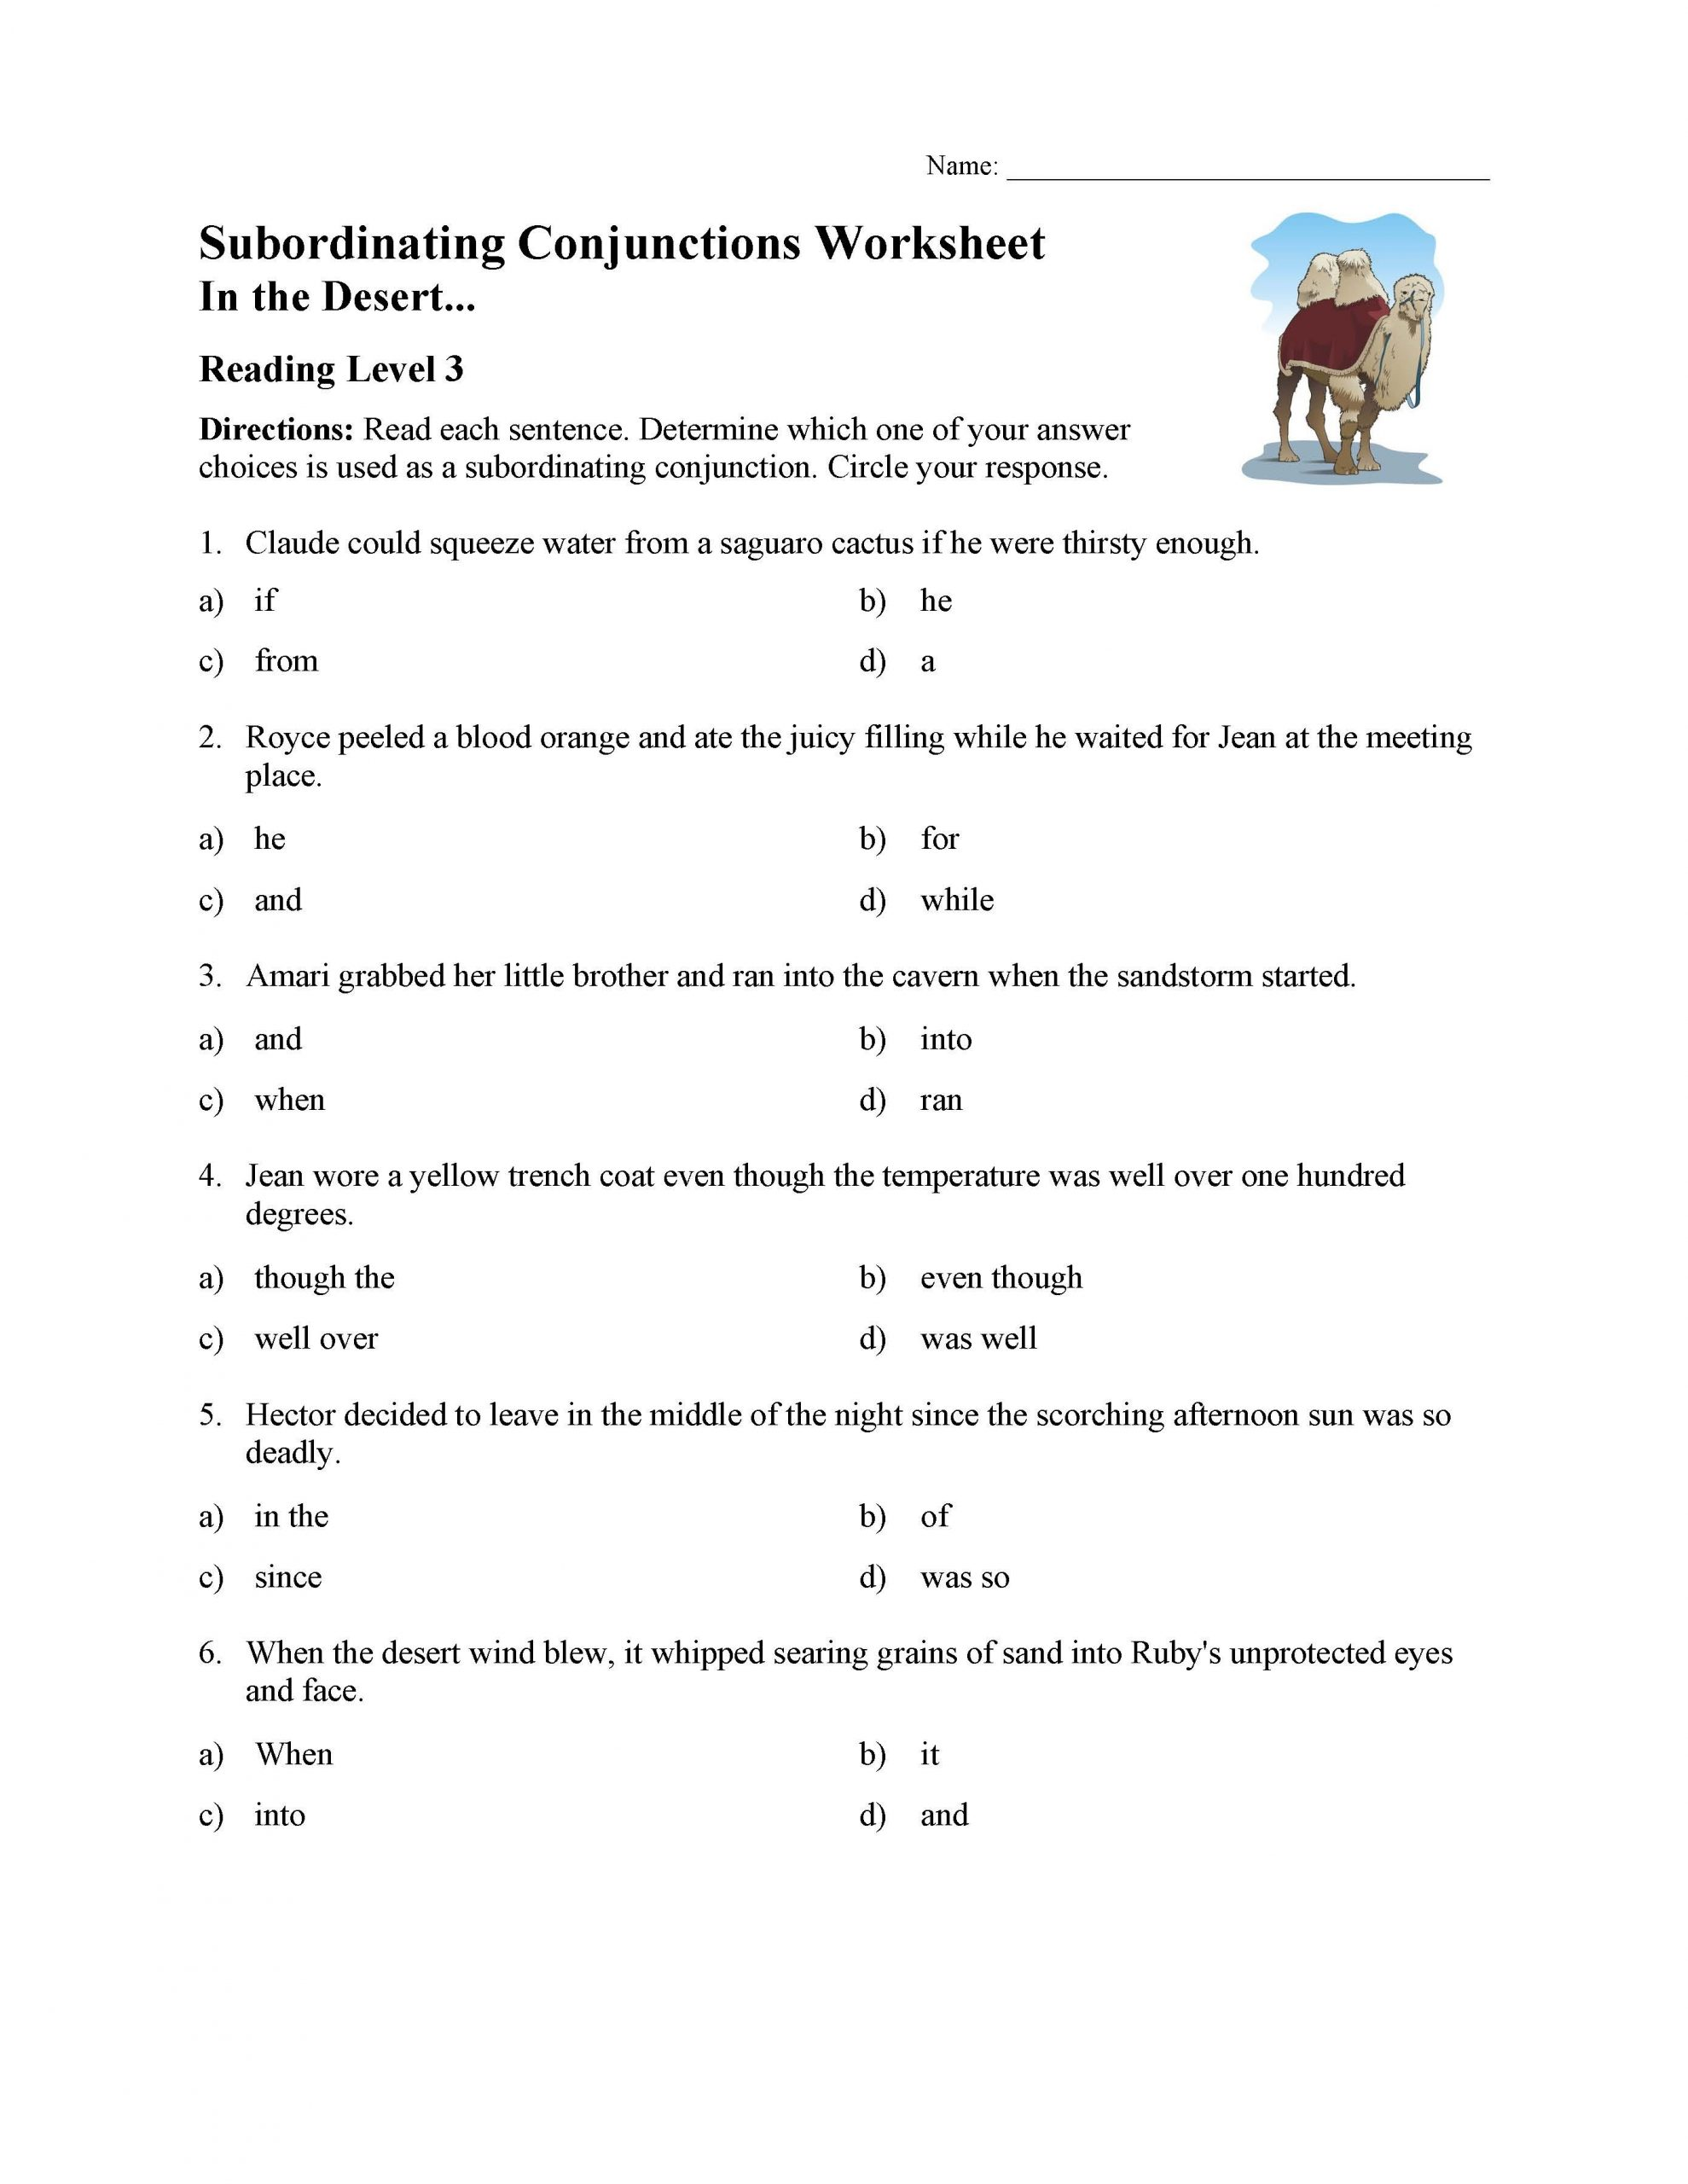 Subordinating Conjunctions Worksheet Reading Level 3